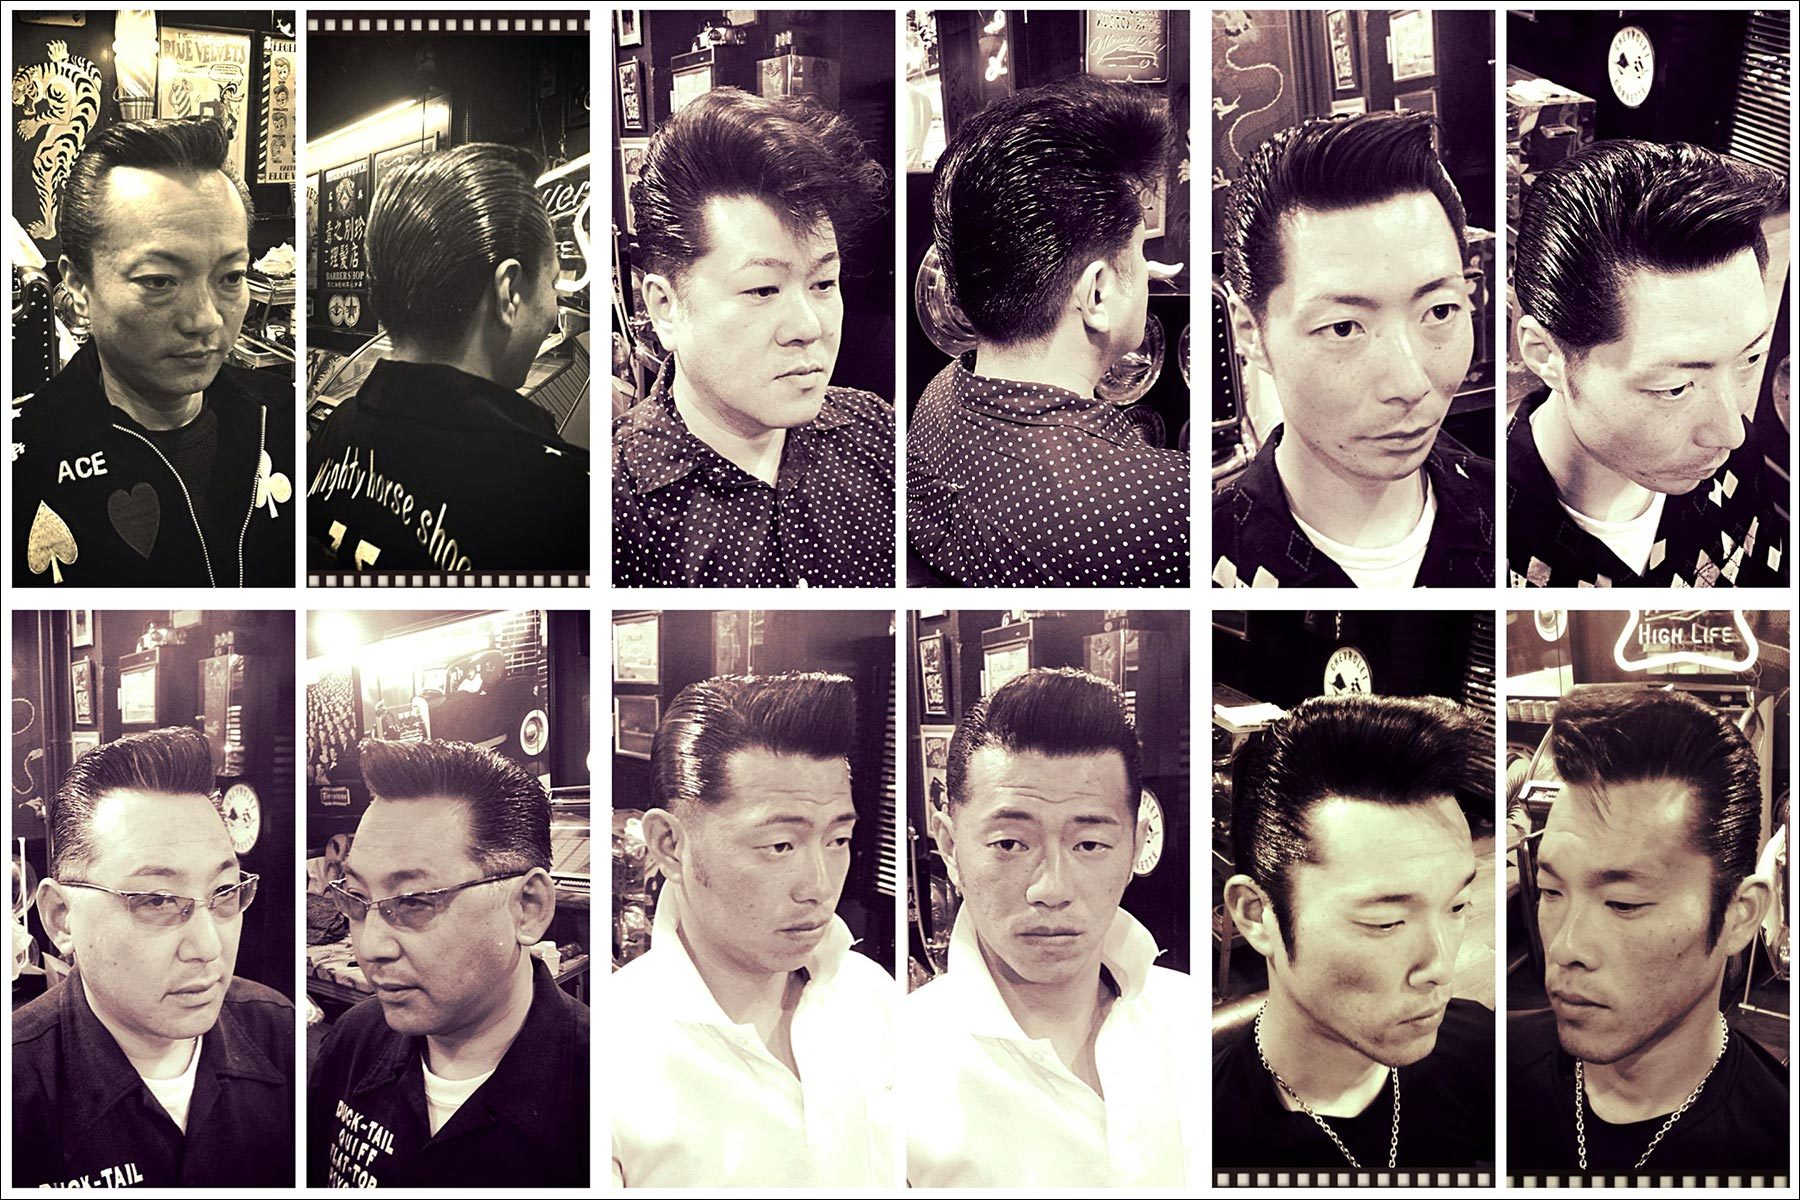 B&W portraits of Japanese rockabillies in perfectly groomed 1950s pompadours from Blue Velvet's barber shop. Ponyboy magazine New York.